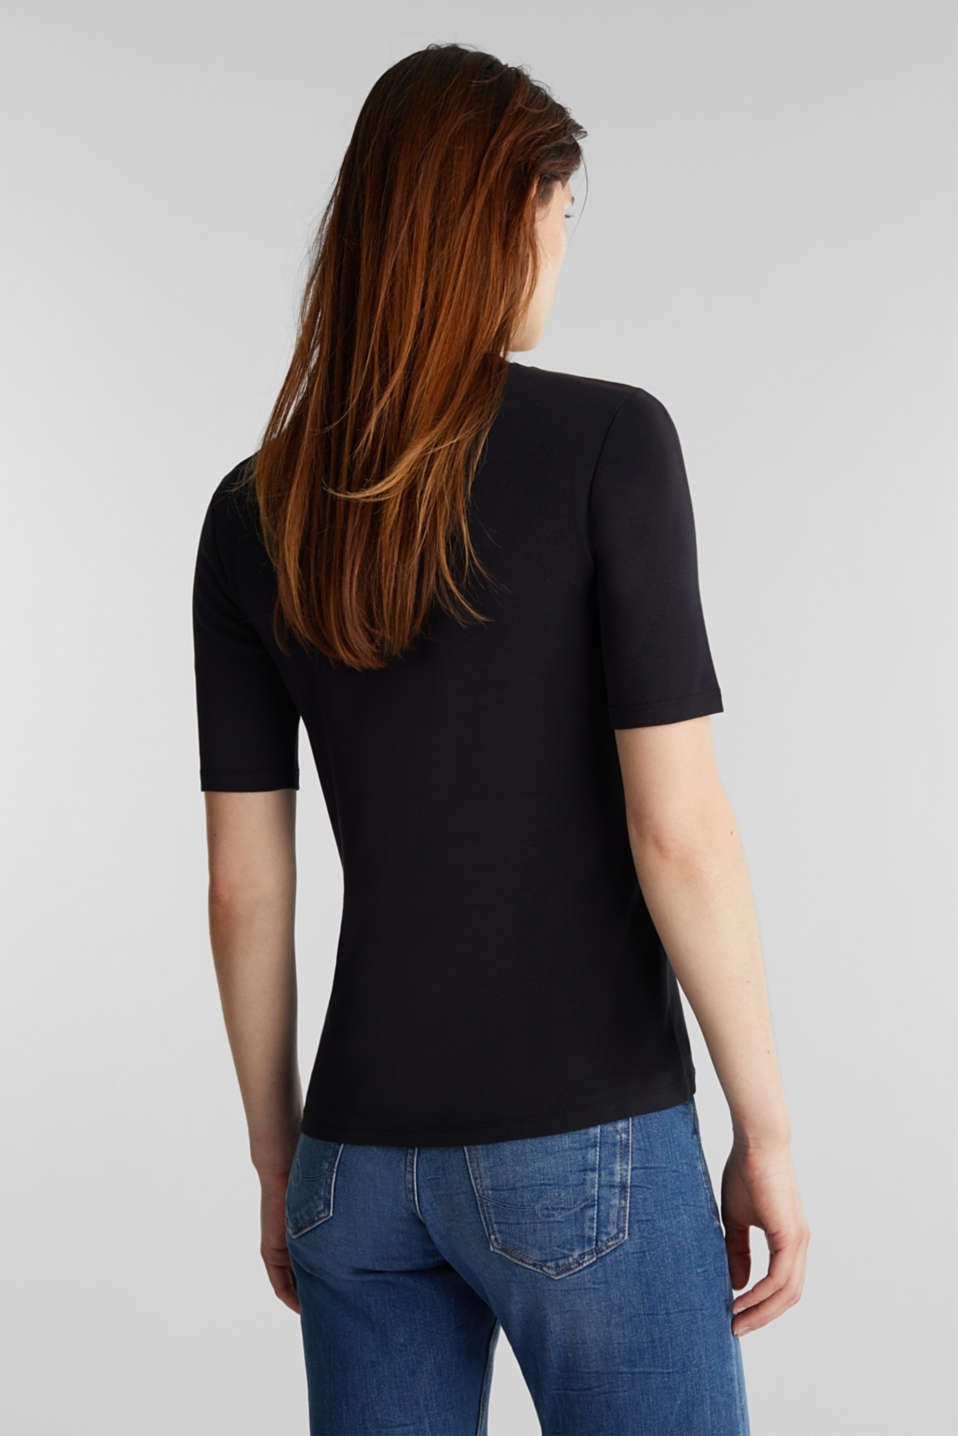 T-shirt with a stand-up collar, 100% cotton, BLACK, detail image number 3